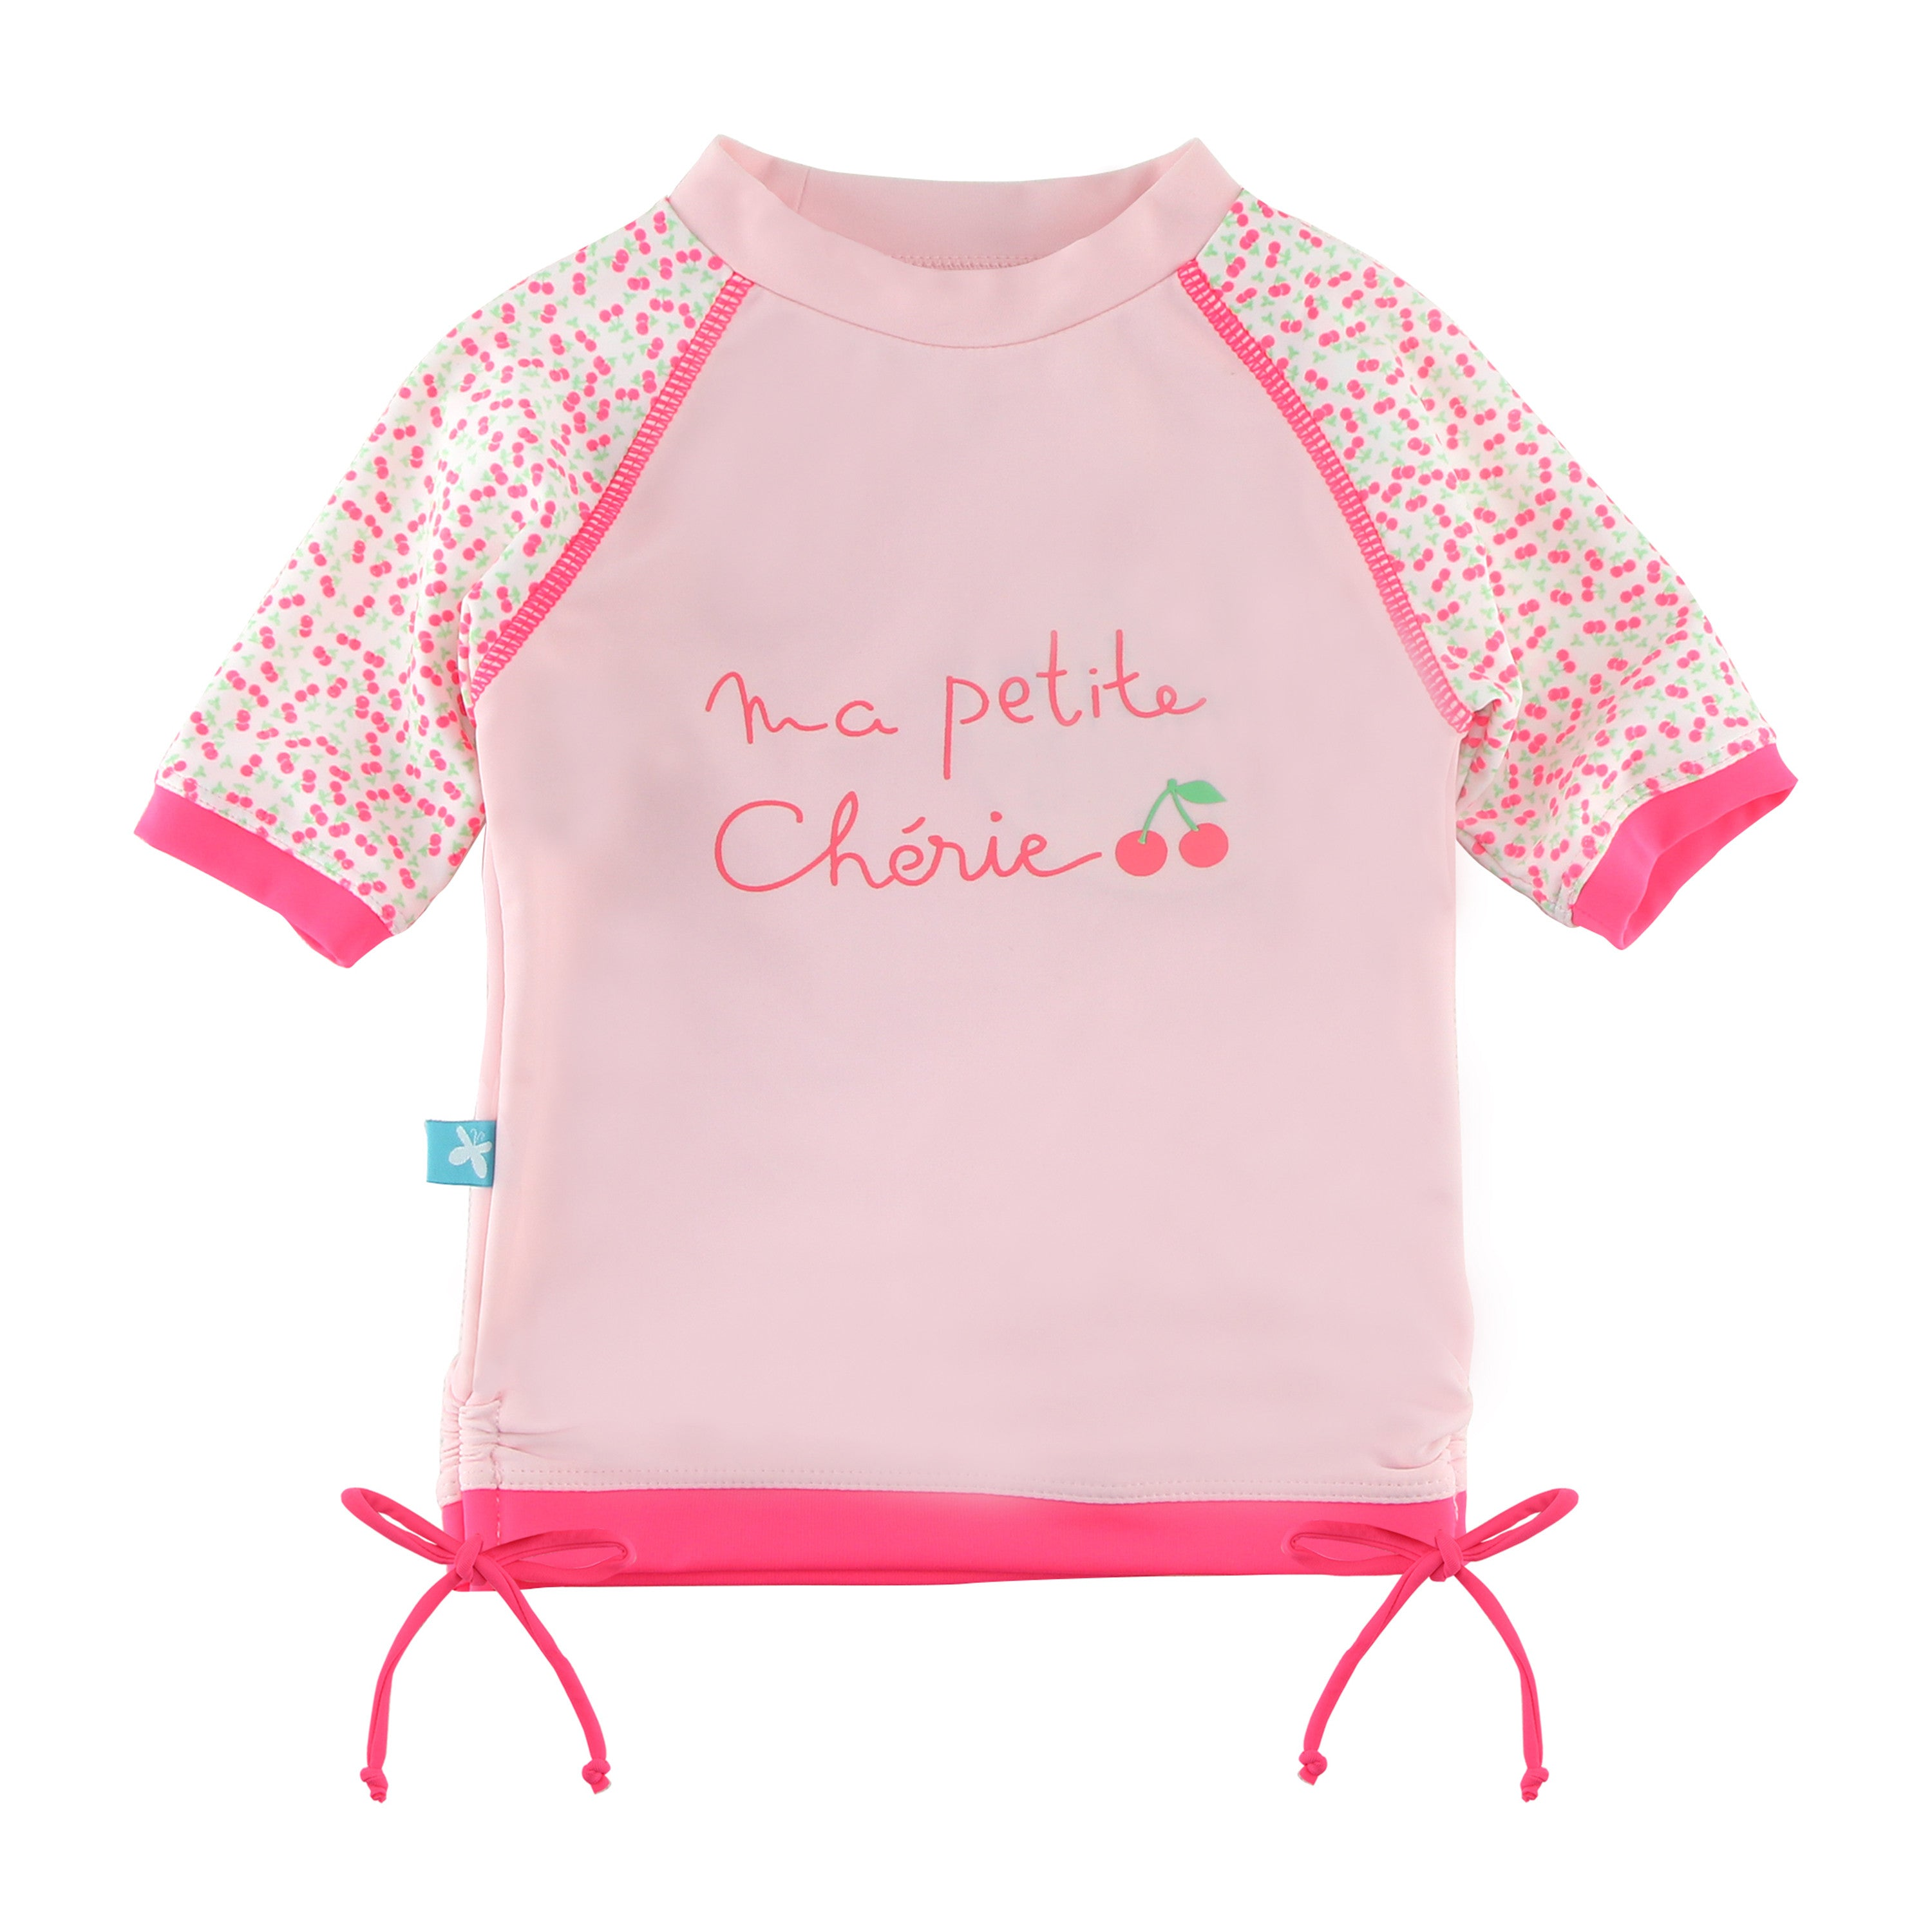 aece2a2b1d ... T-shirt Maillot de bain rose anti uv